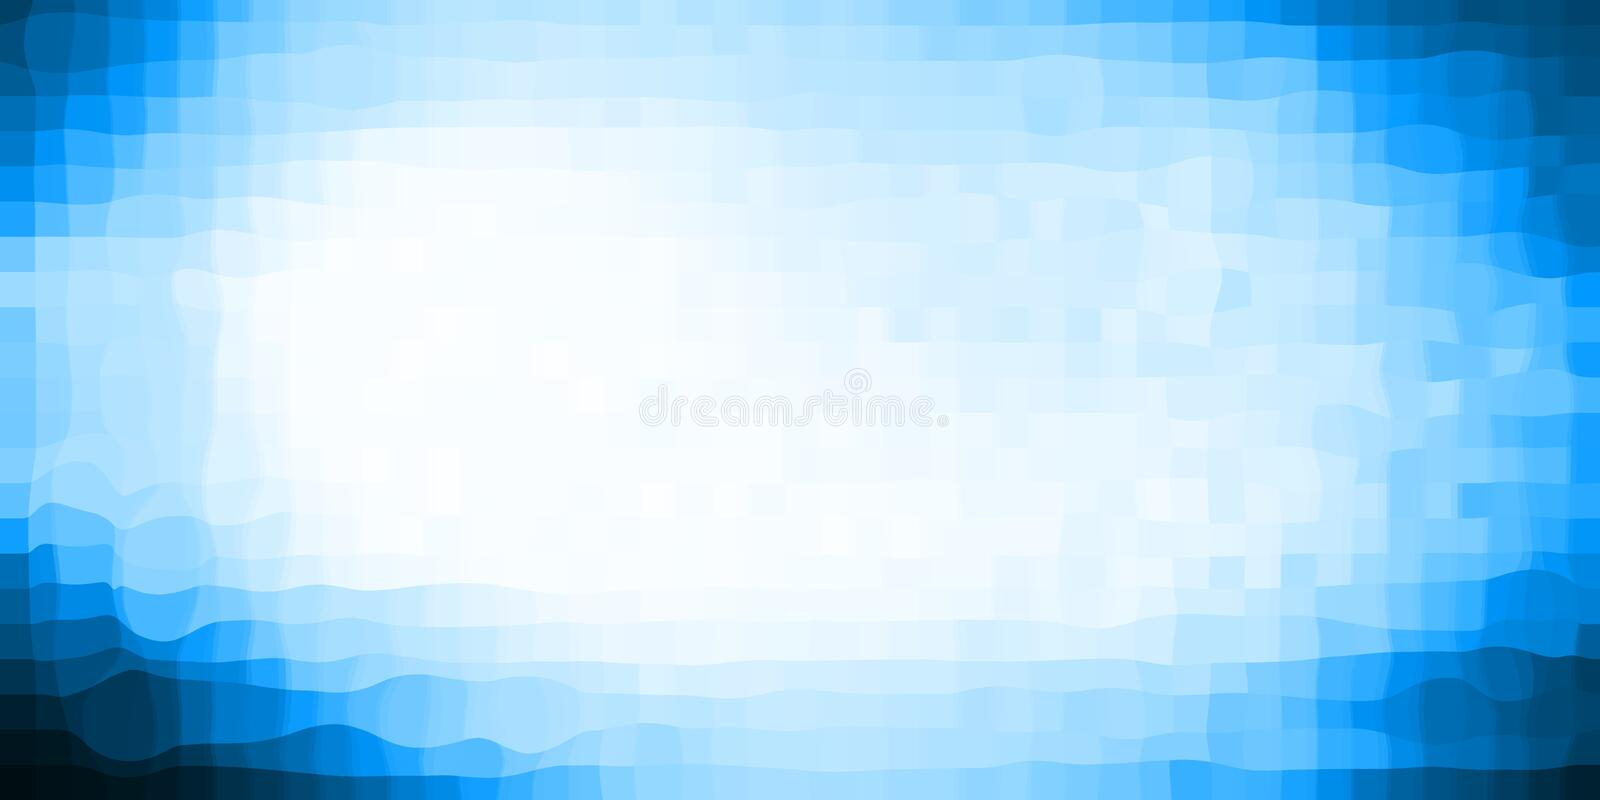 Blue abstract high-tech pixelate background stock photo